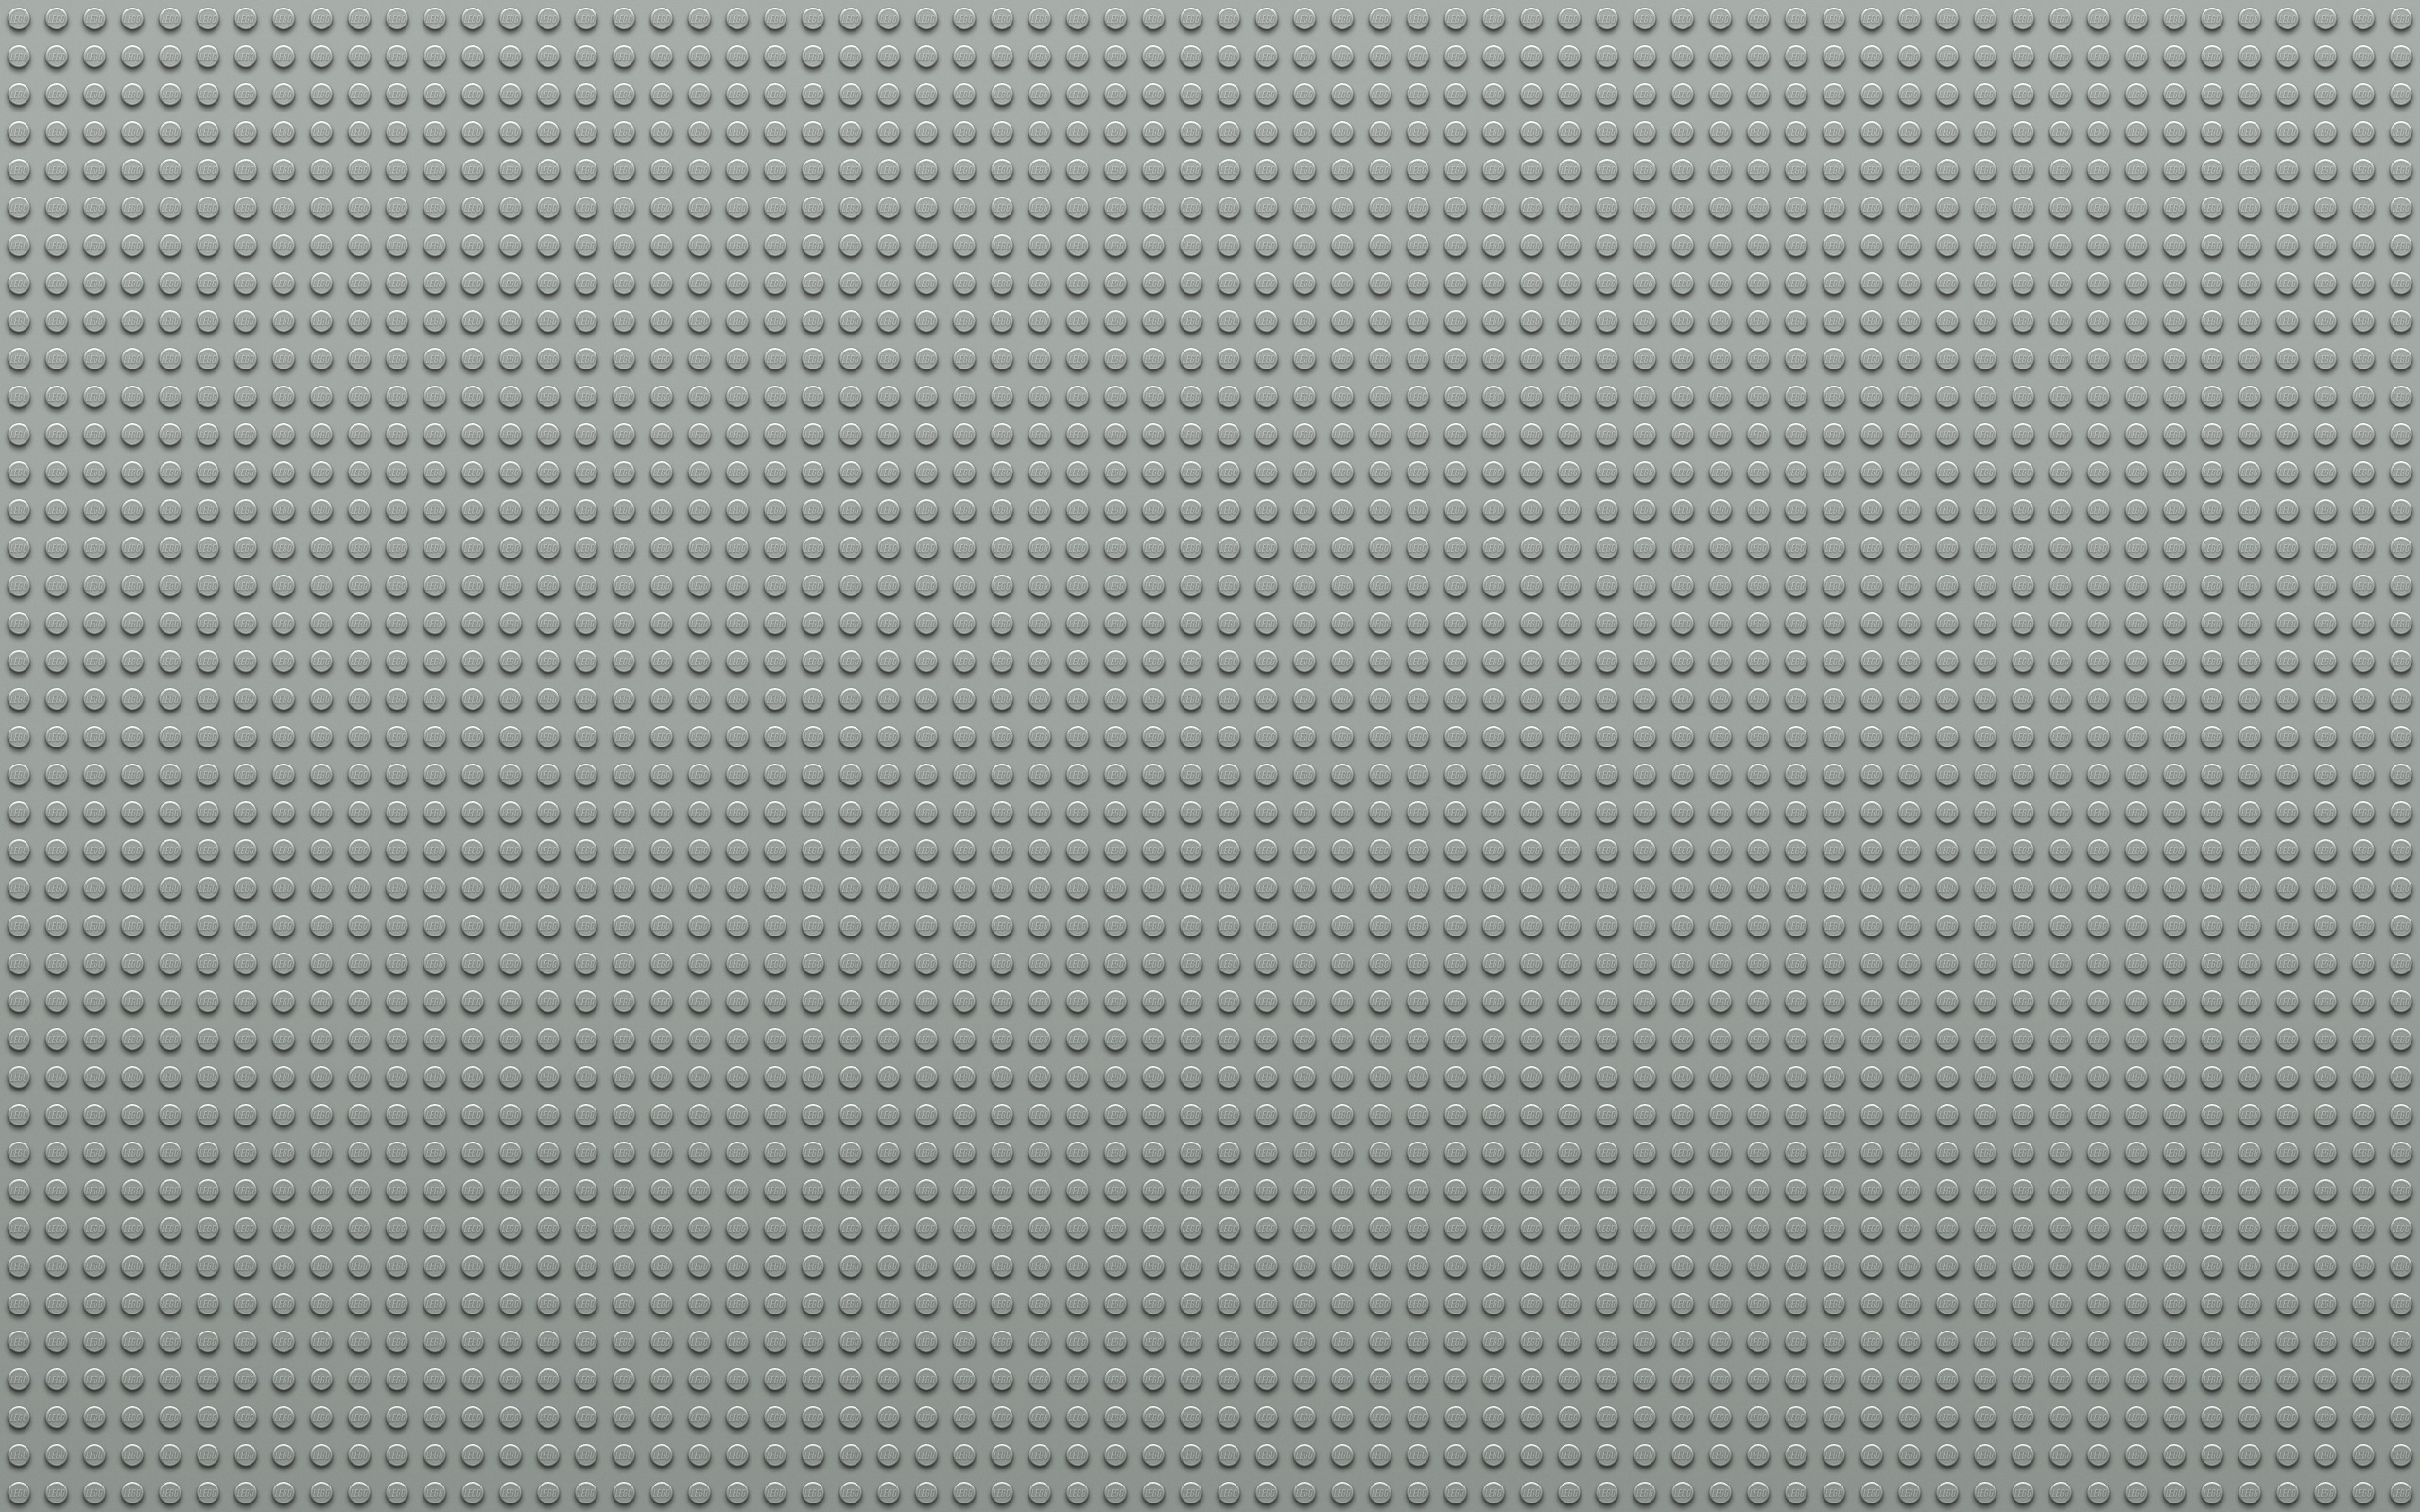 Light Gray Background 183 ① Download Free Wallpapers For